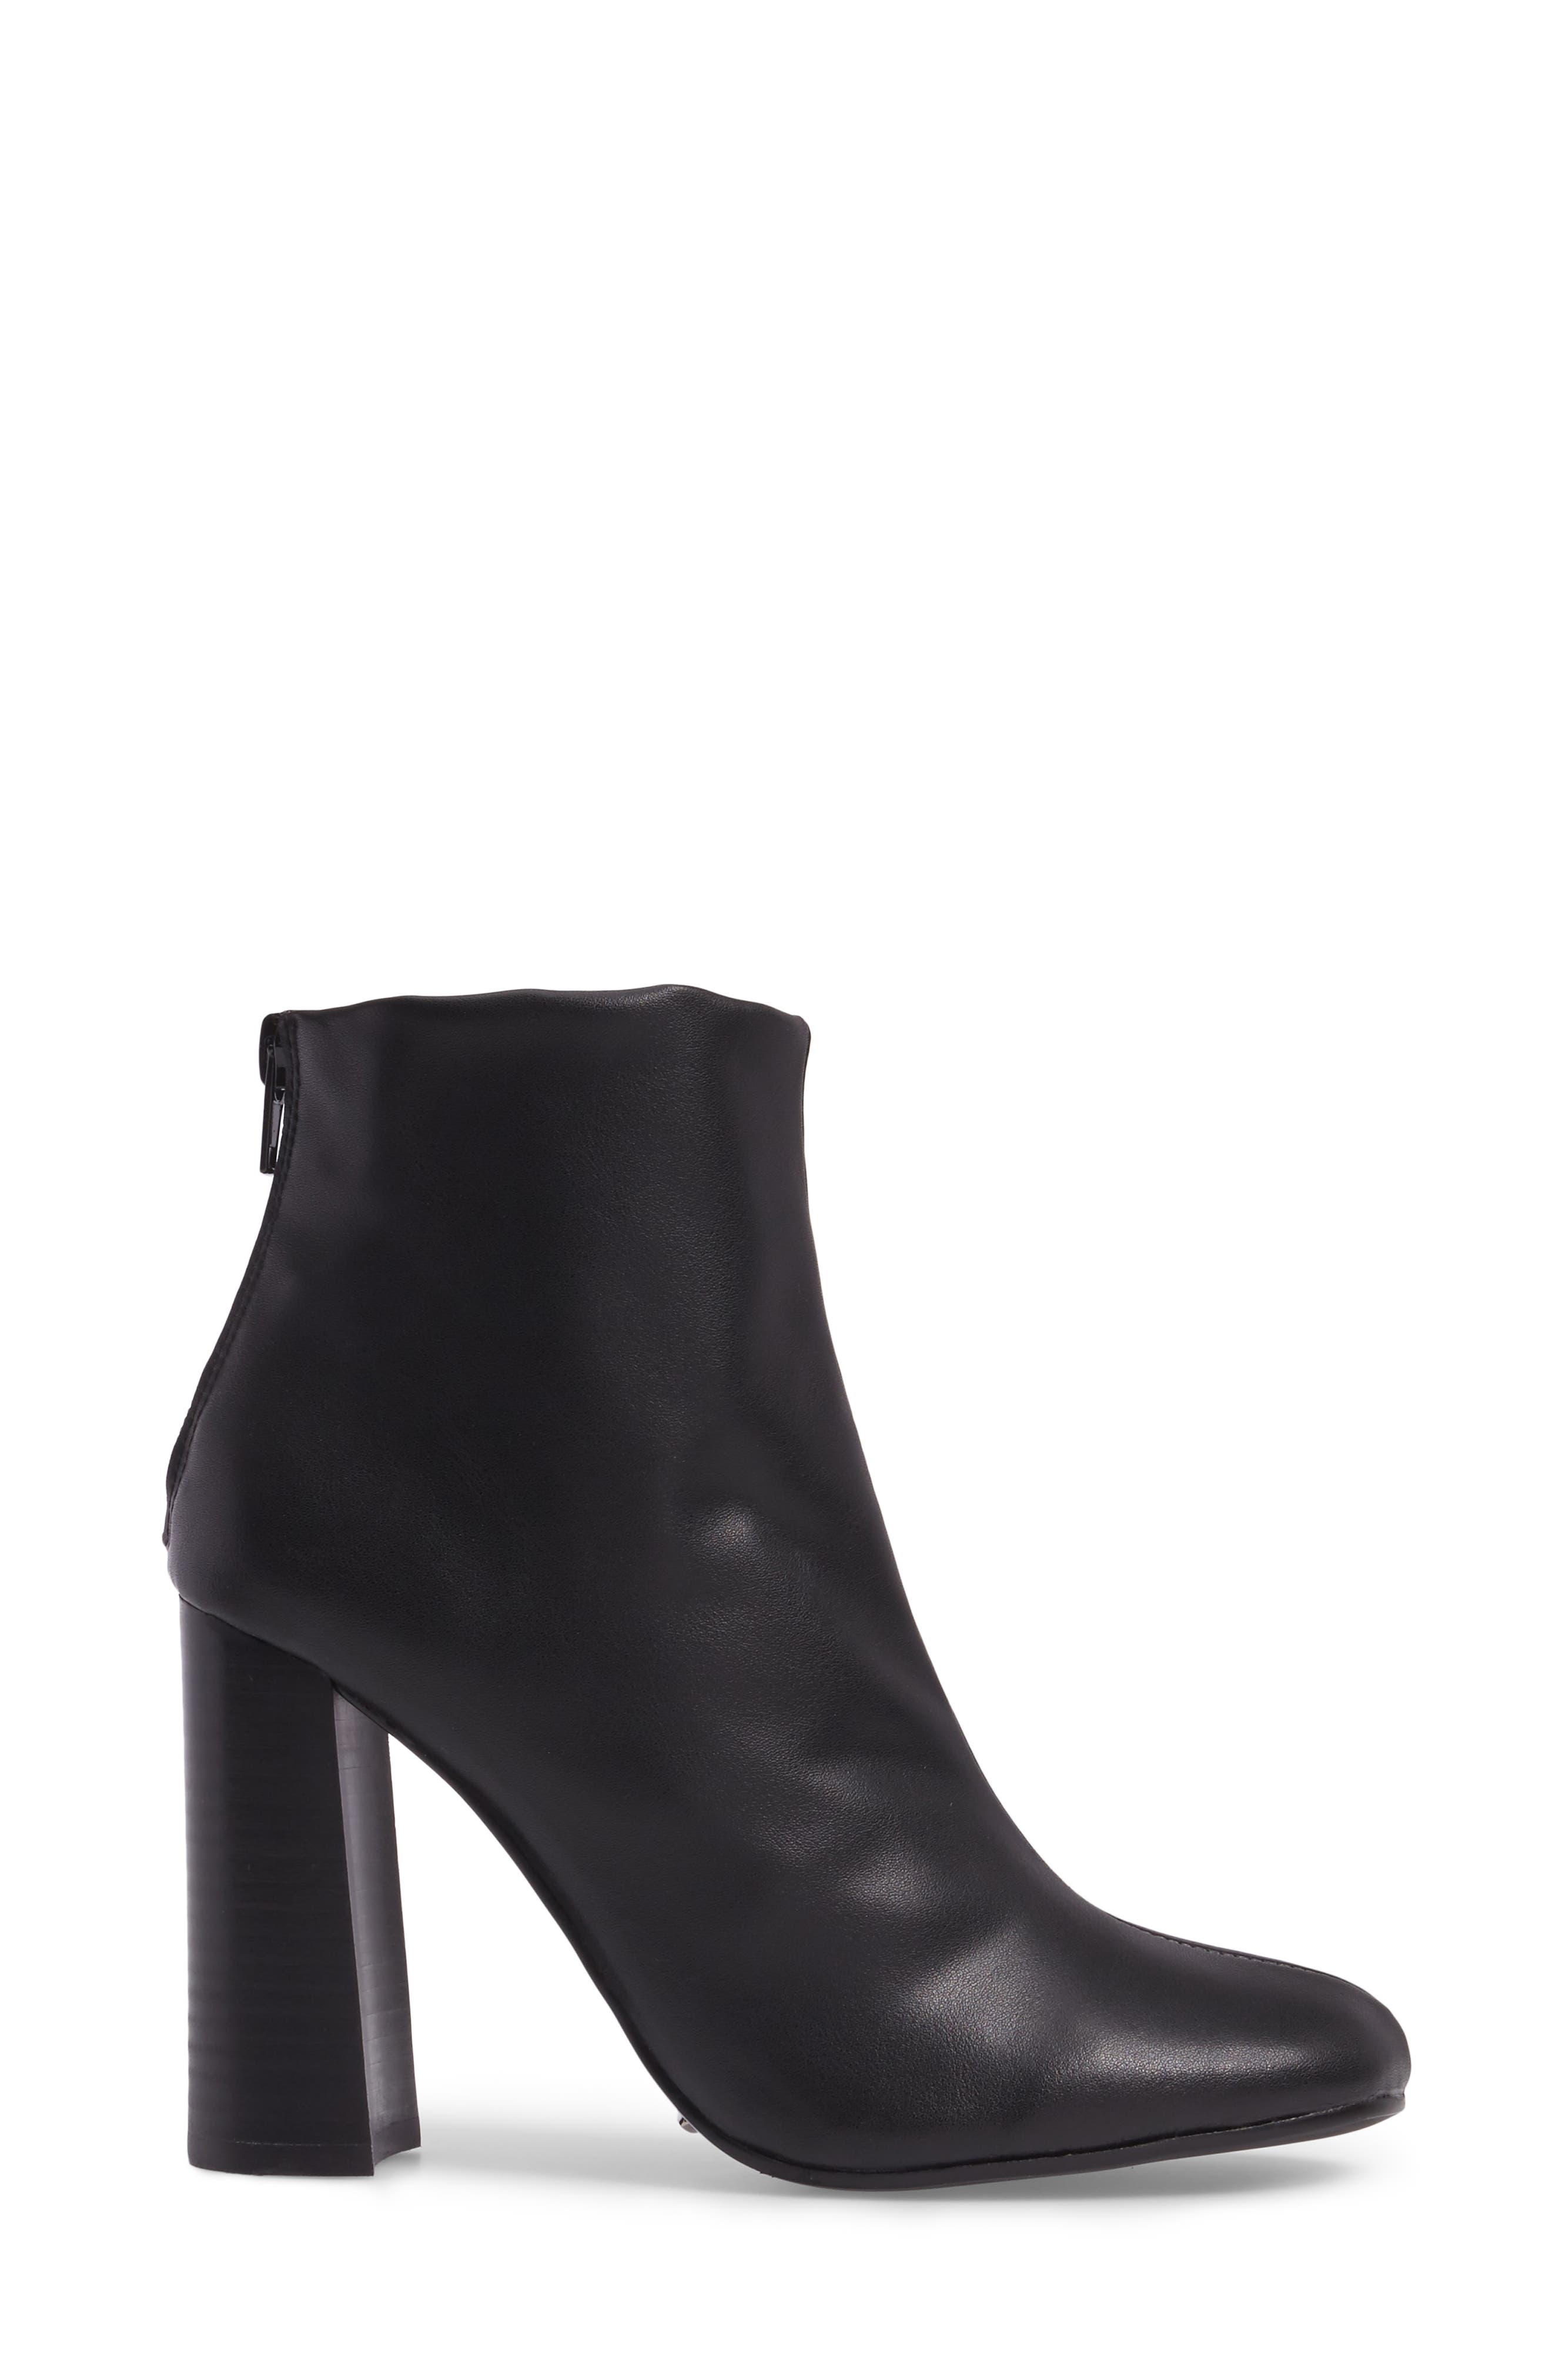 Nyx Stretch Bootie,                             Alternate thumbnail 3, color,                             Black Nappa Leather